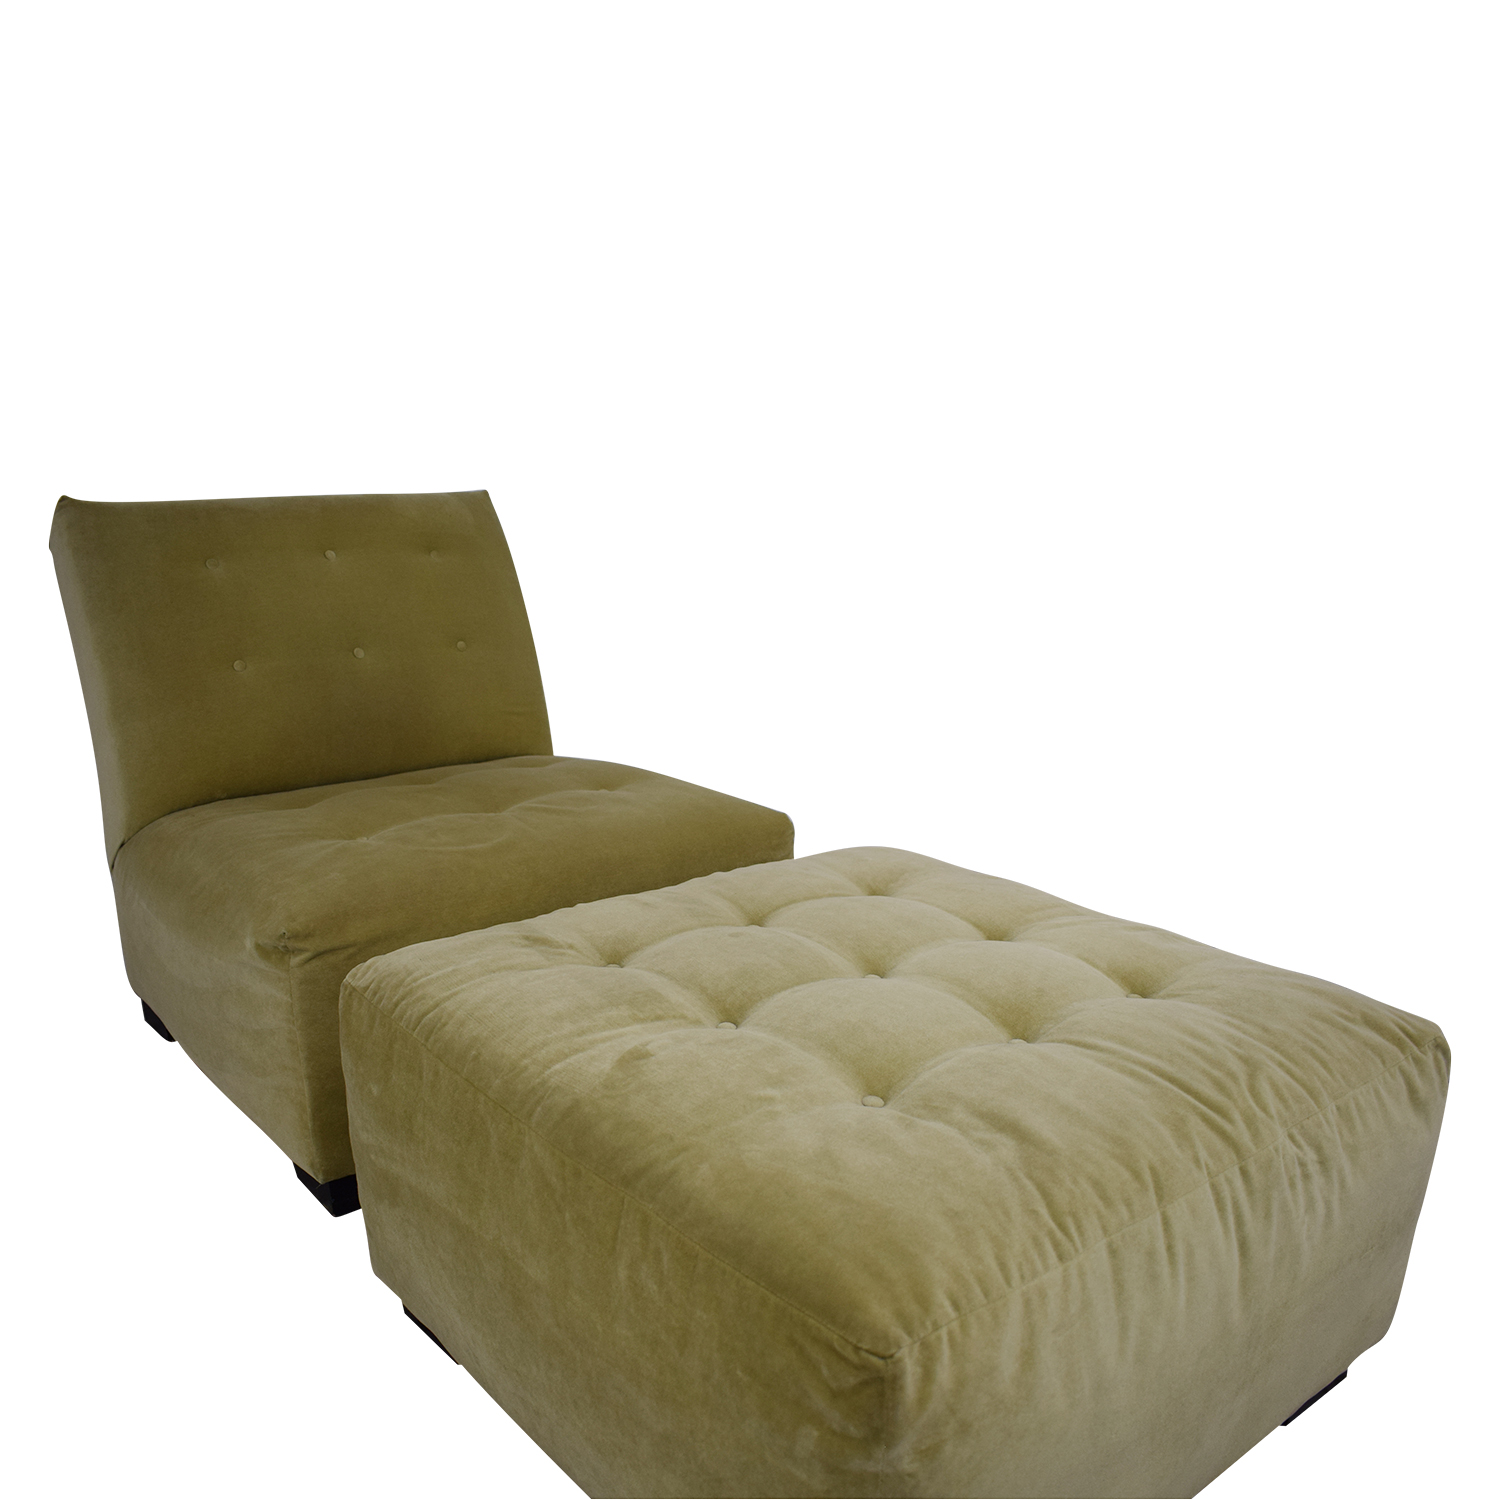 Crate & Barrel Crate & Barrel Sage Green Tufted Lounge Chair & Ottoman second hand